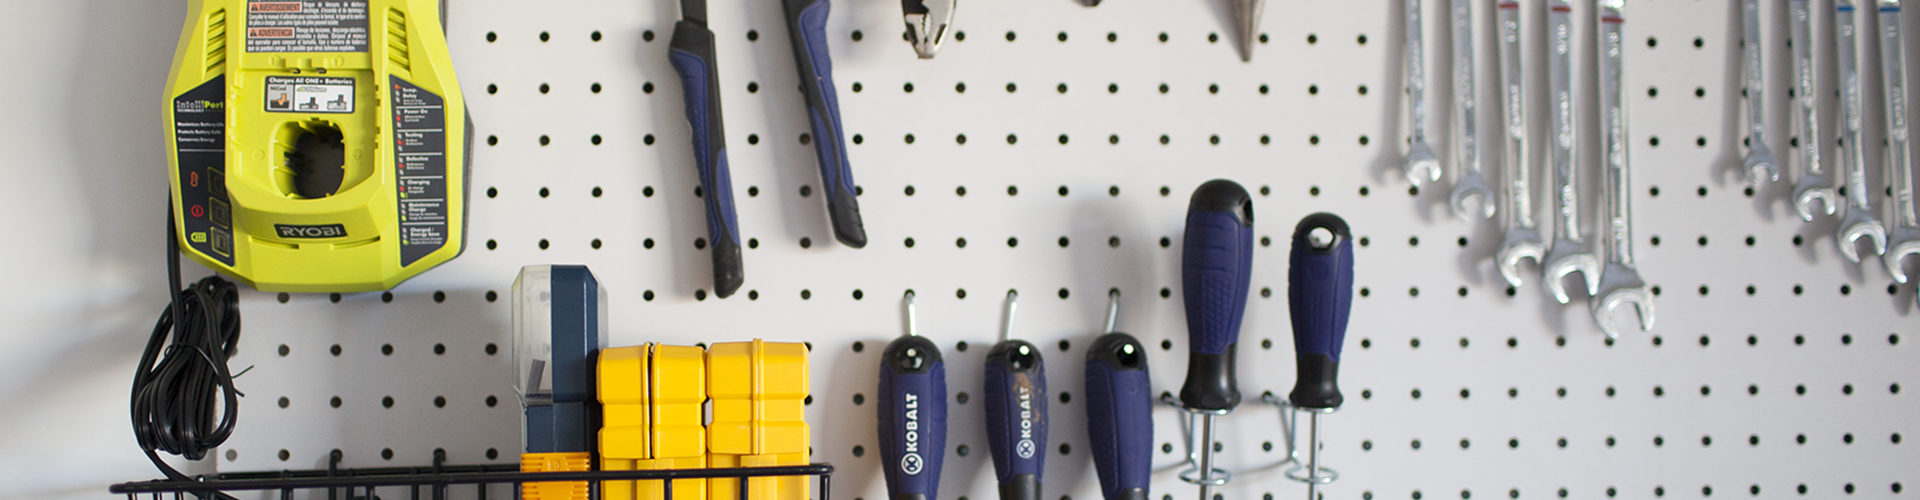 How to organize tools with a garage pegboard life storage blog diy garage pegboard yellow tools solutioingenieria Images